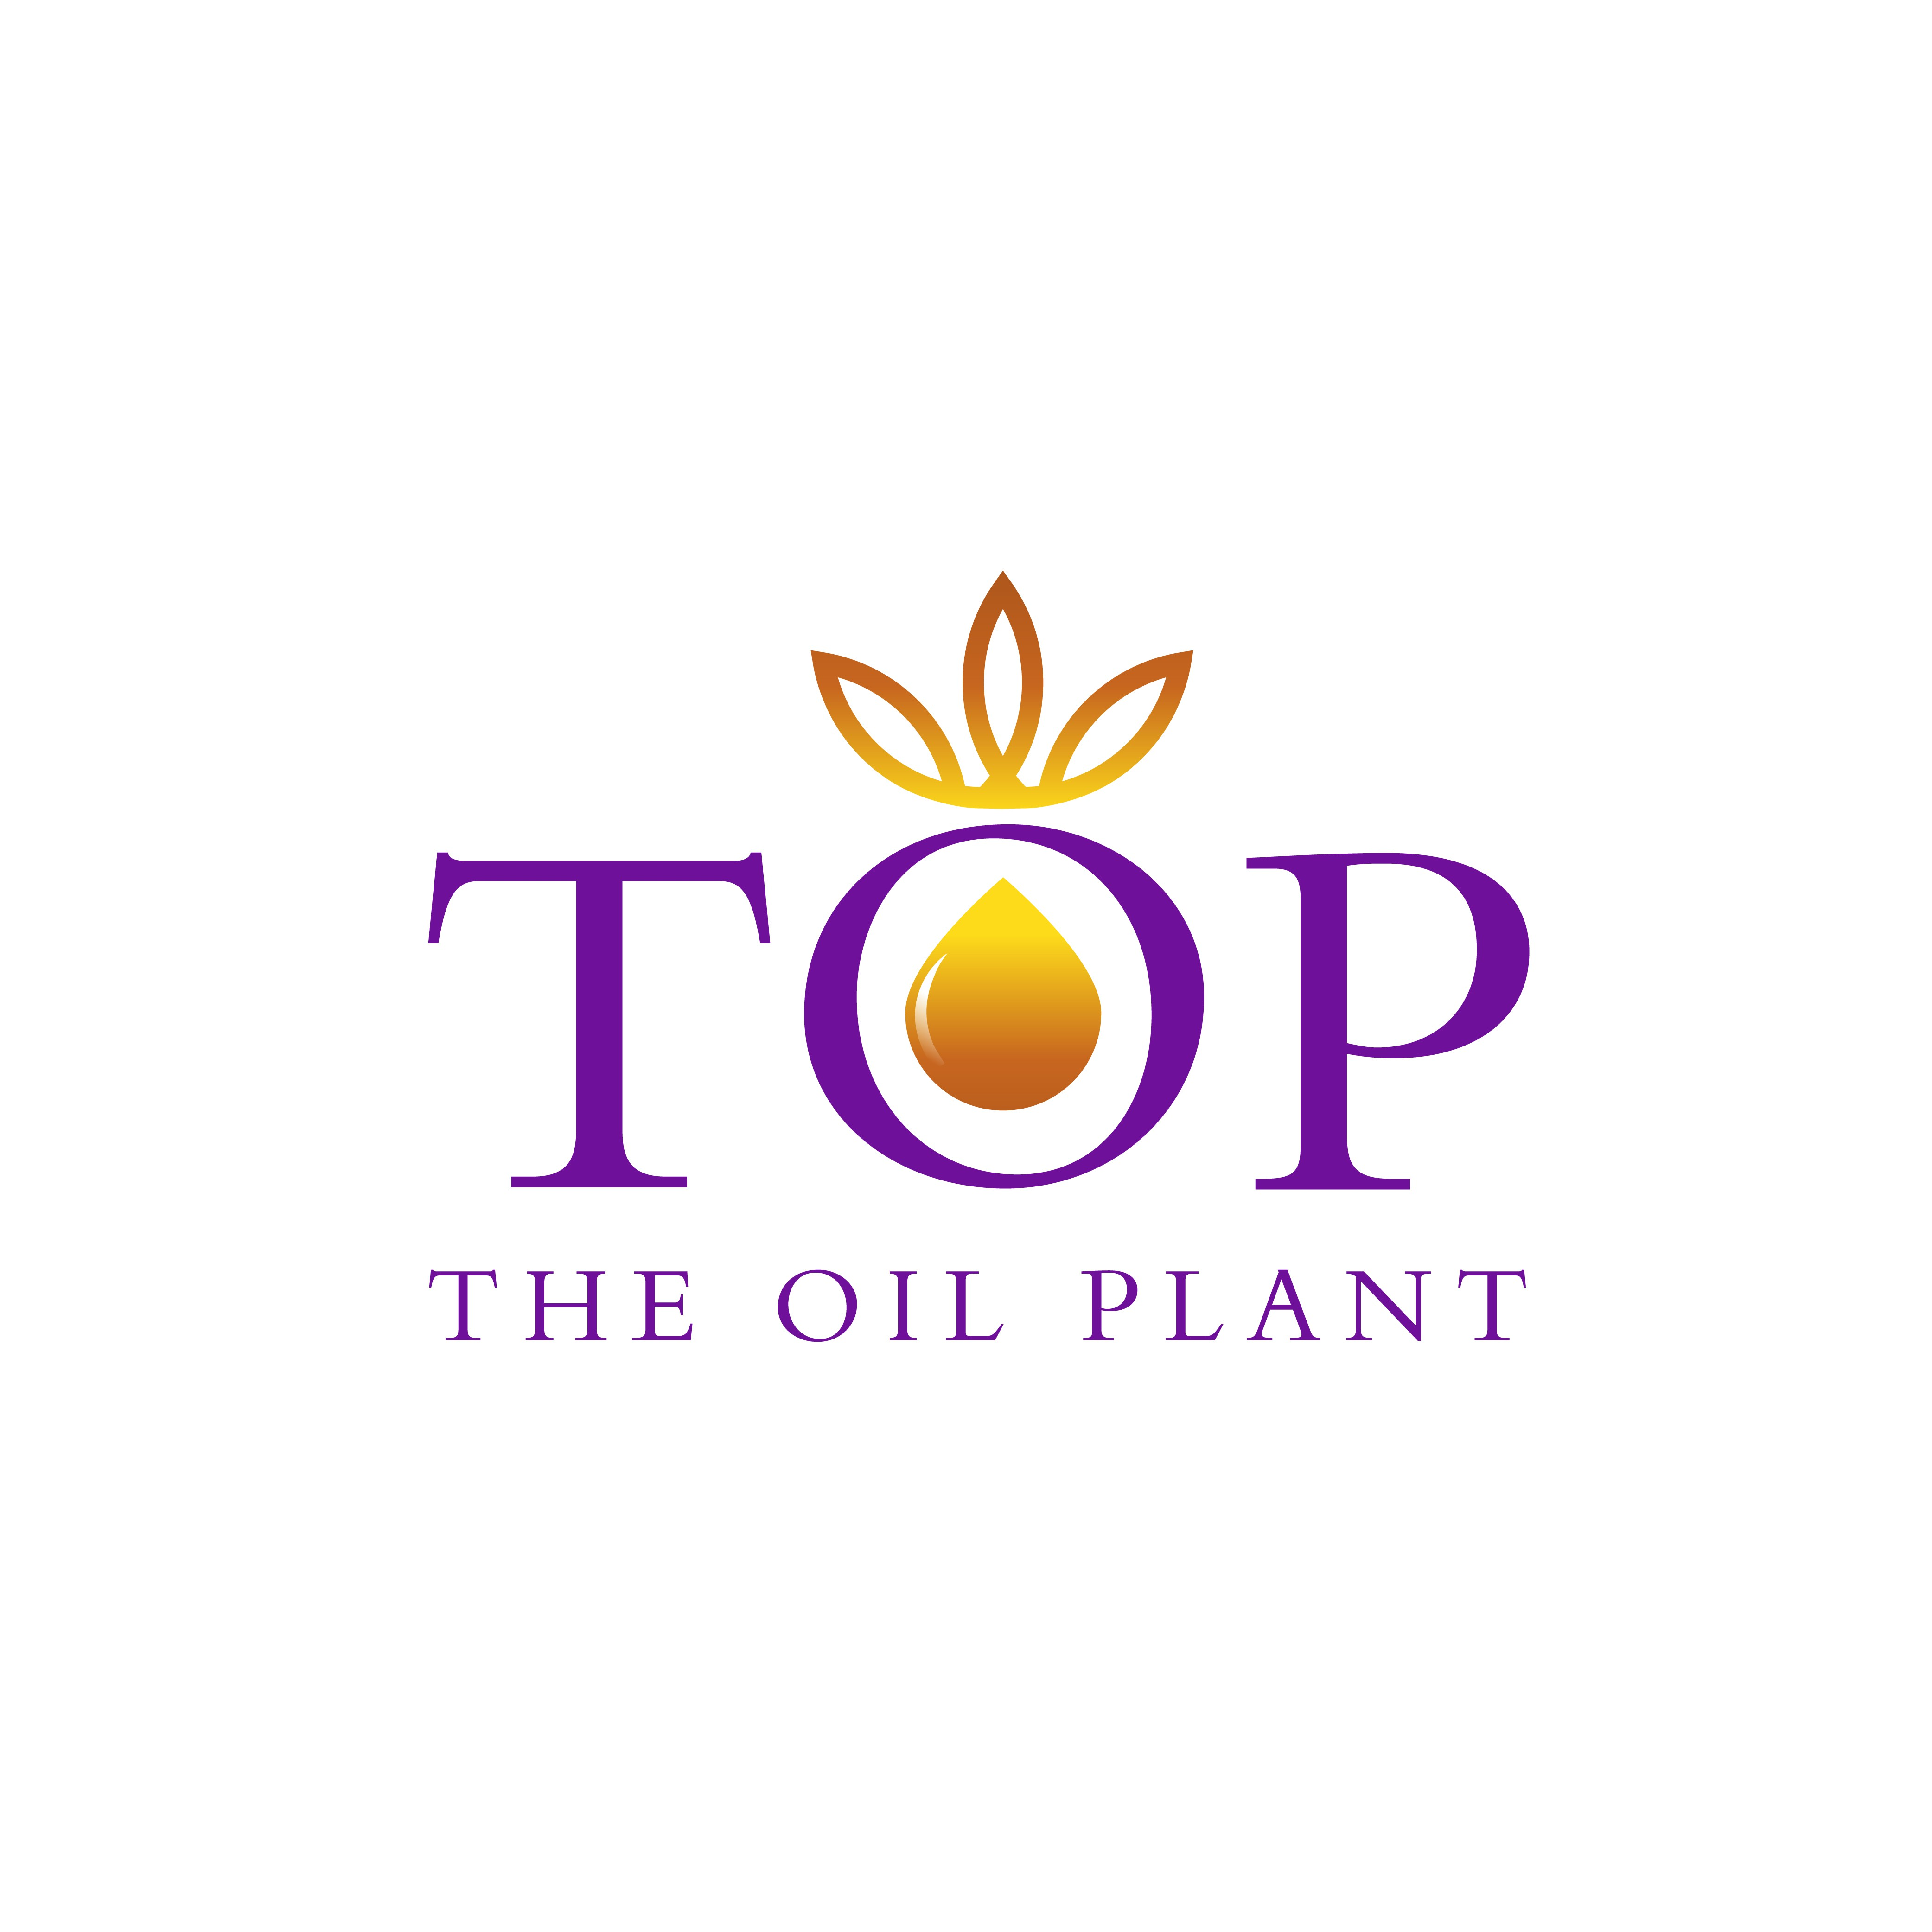 The Oil Plant, Inc (TOP) needs a logo for USA and International Cannabis Company!